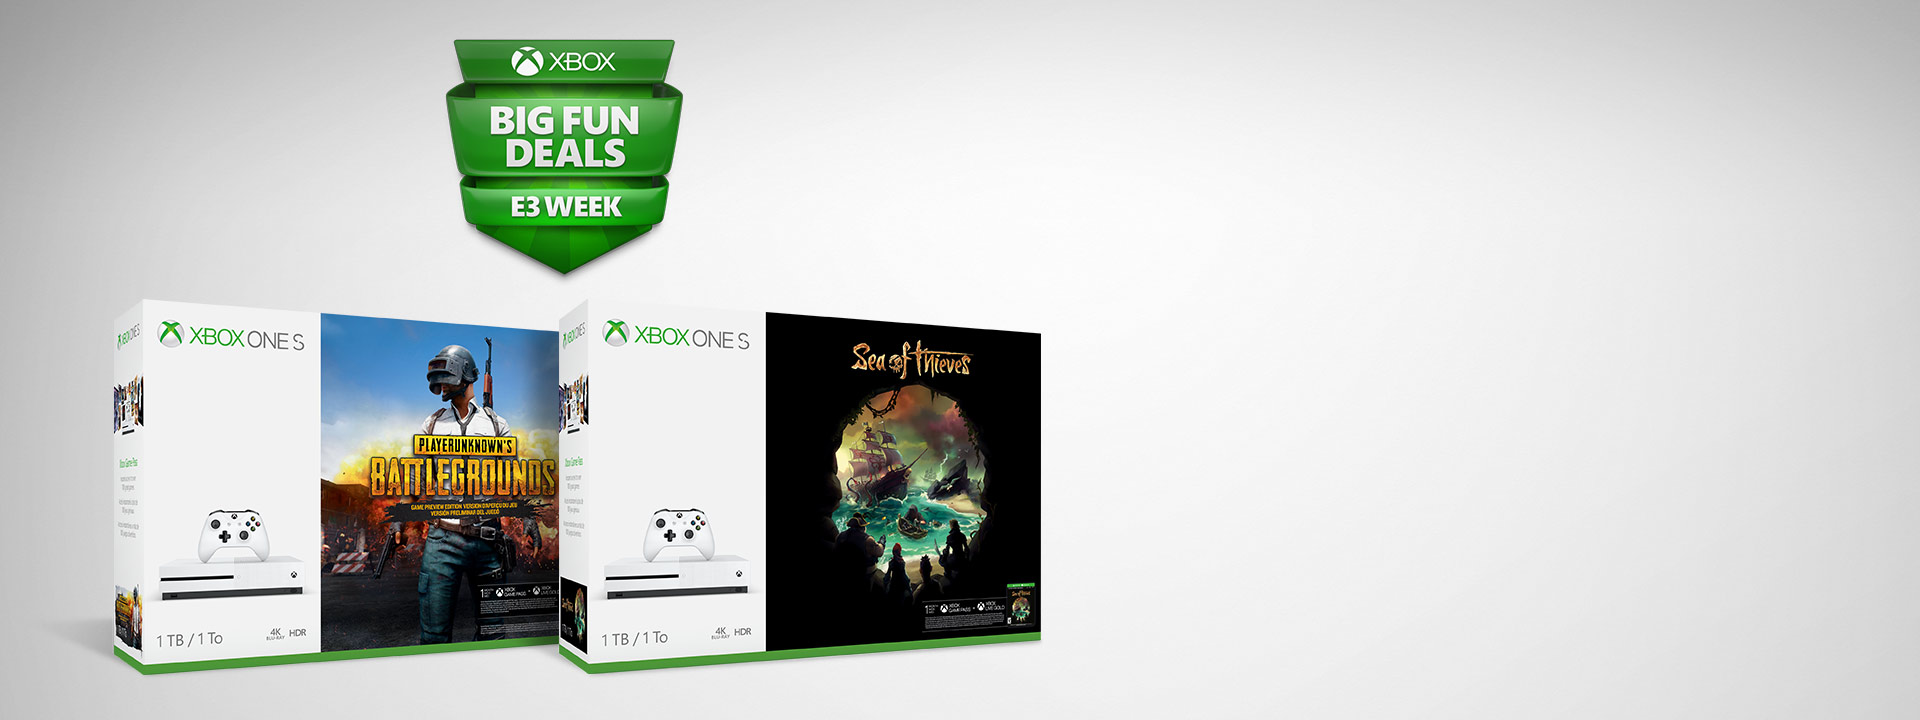 Xbox One S and Xbox One S Sea of Thieves 1 terabyte bundle box